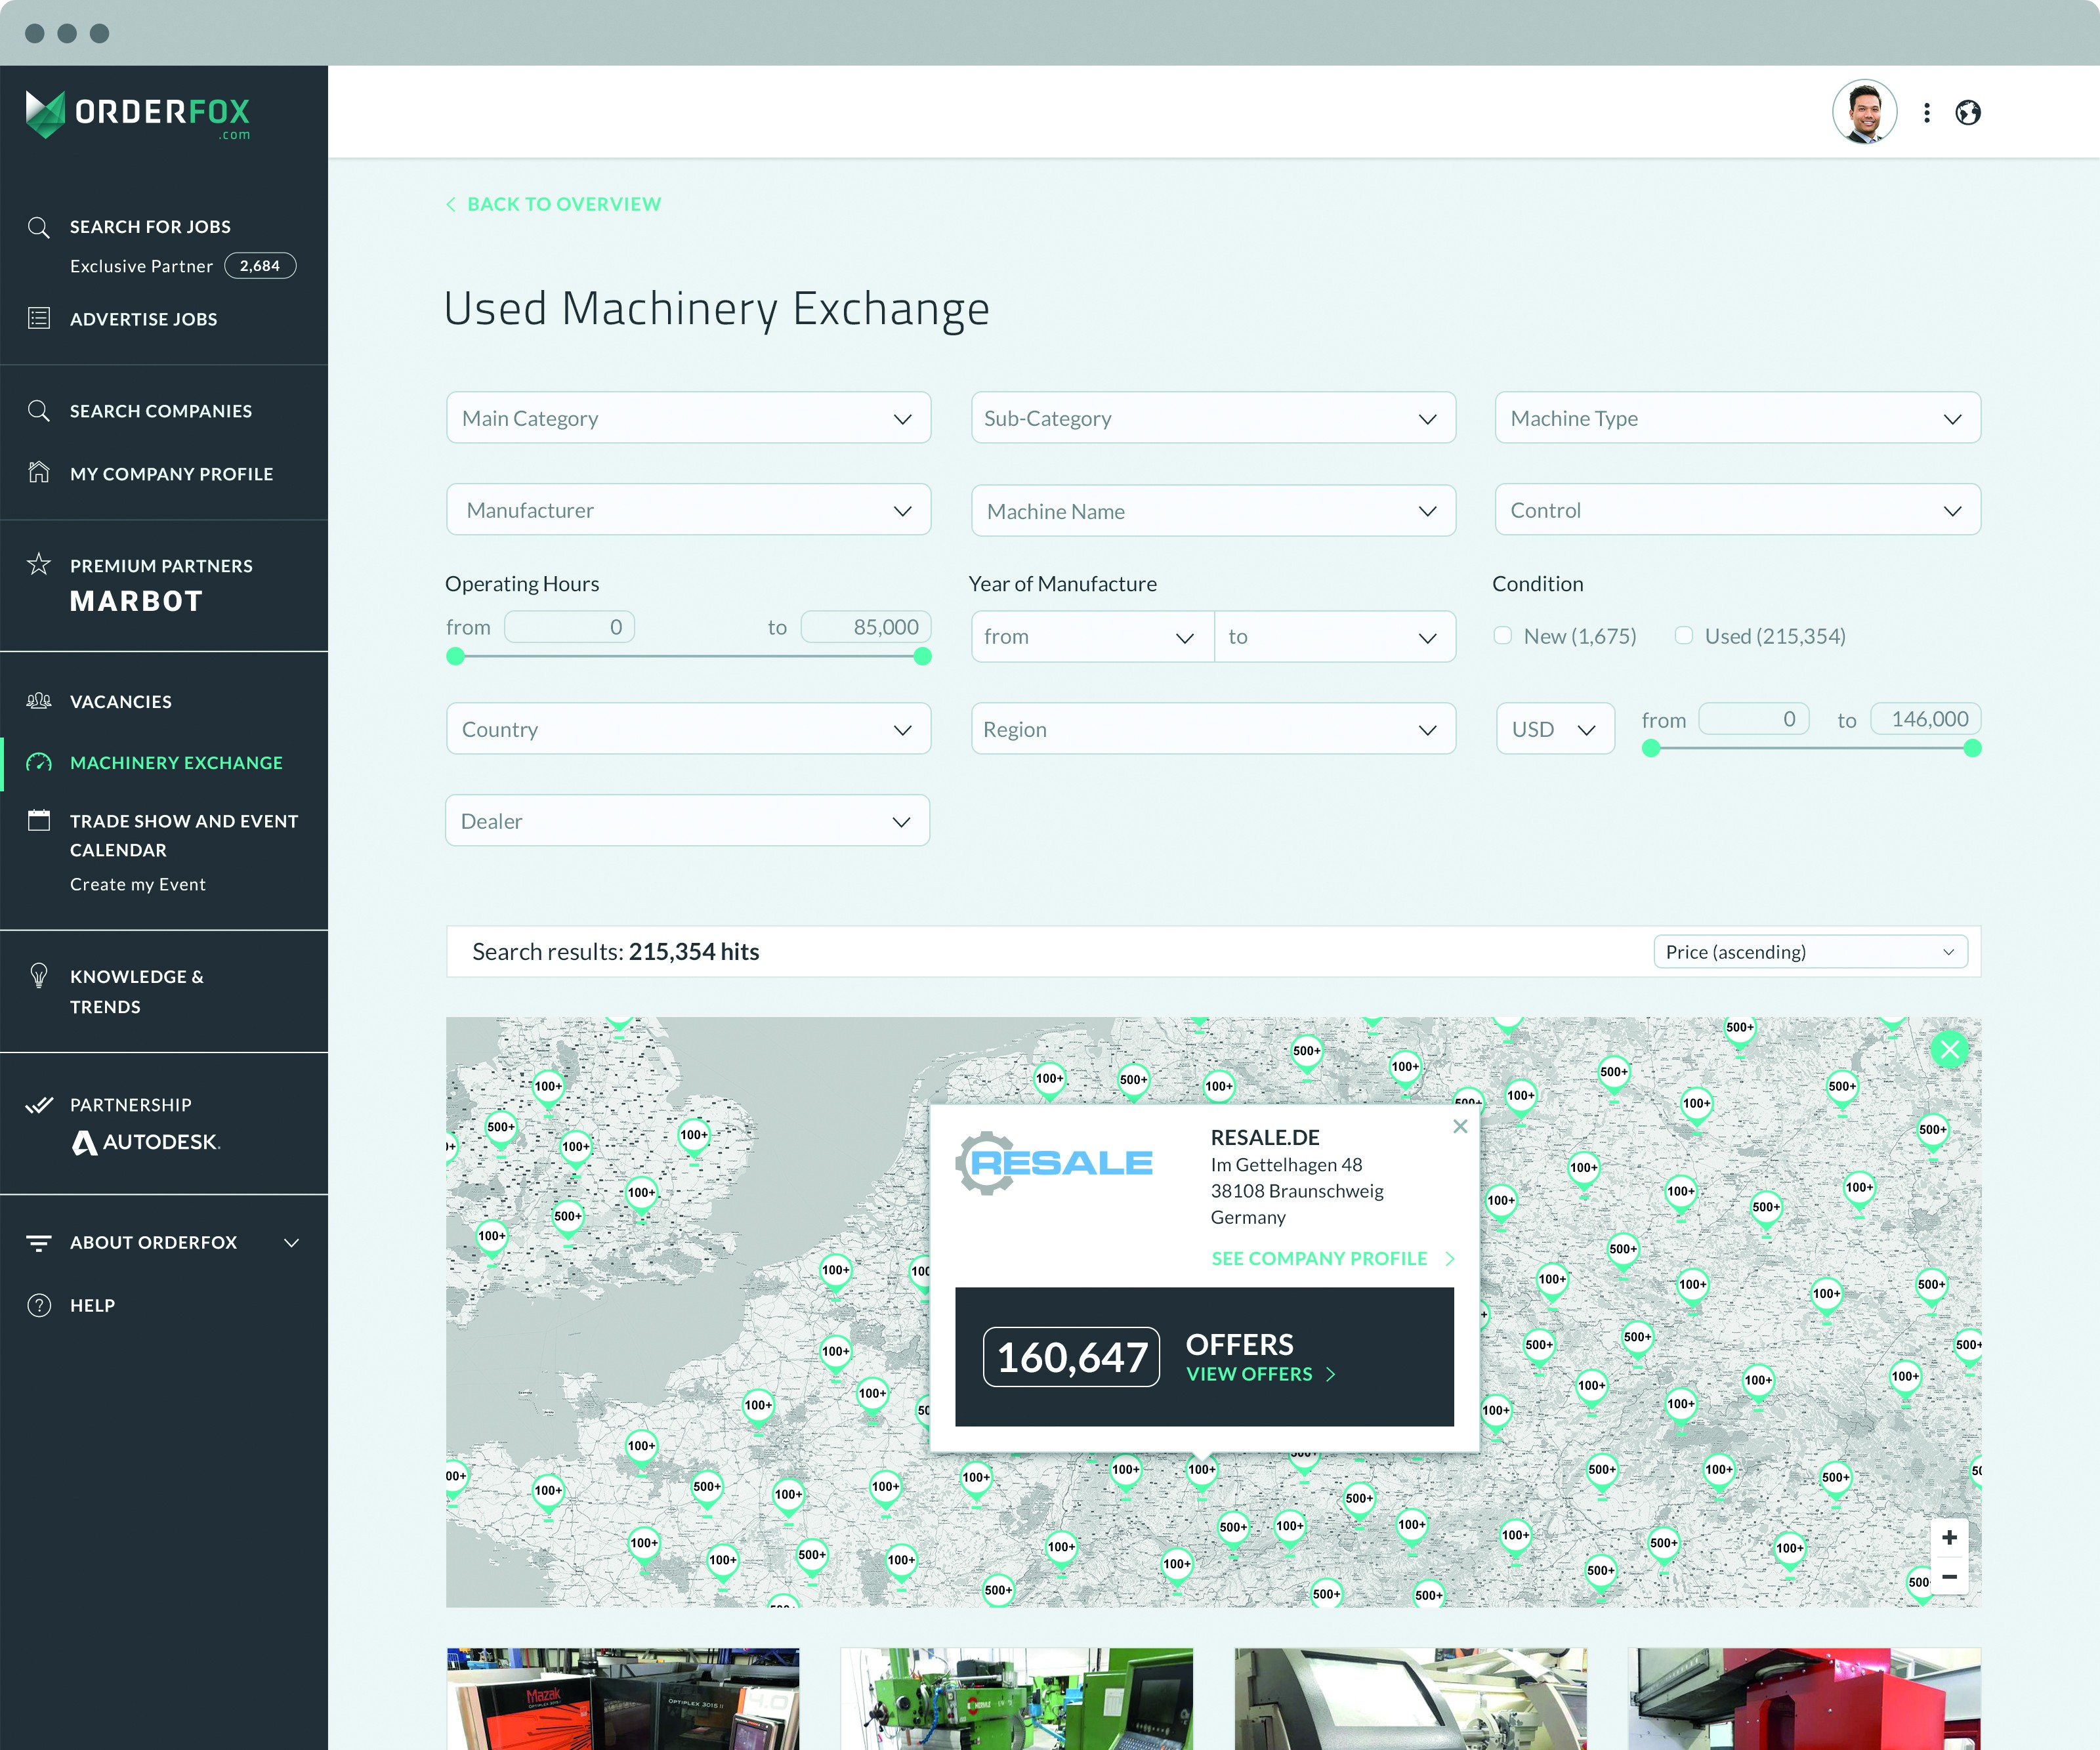 screenshot of used machinery exchange section